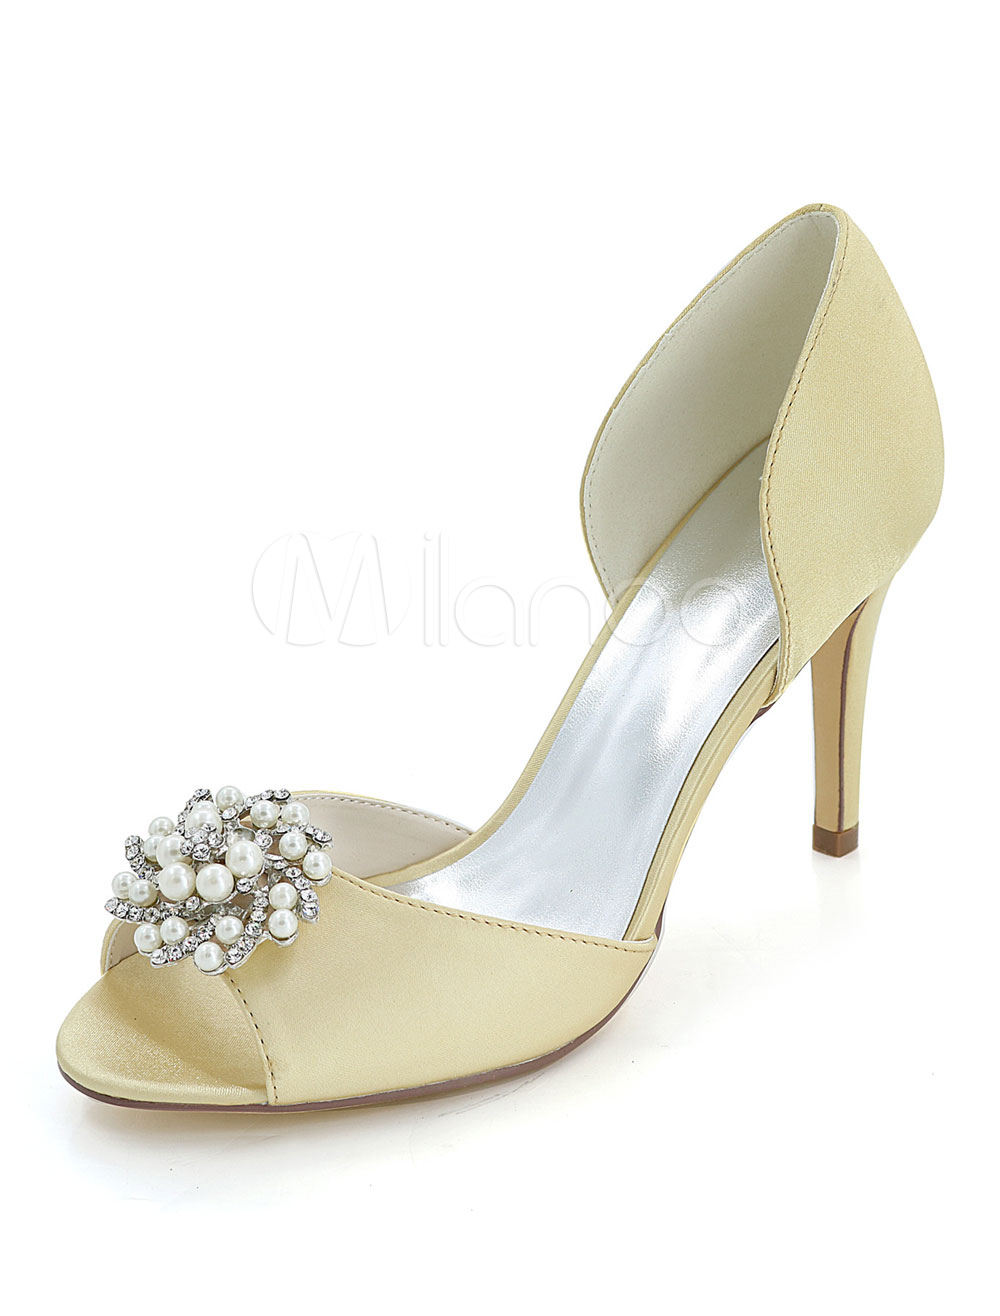 Gold Wedding Shoes High Heel Stiletto Peep Toe Rhinestones Bridal Pumps